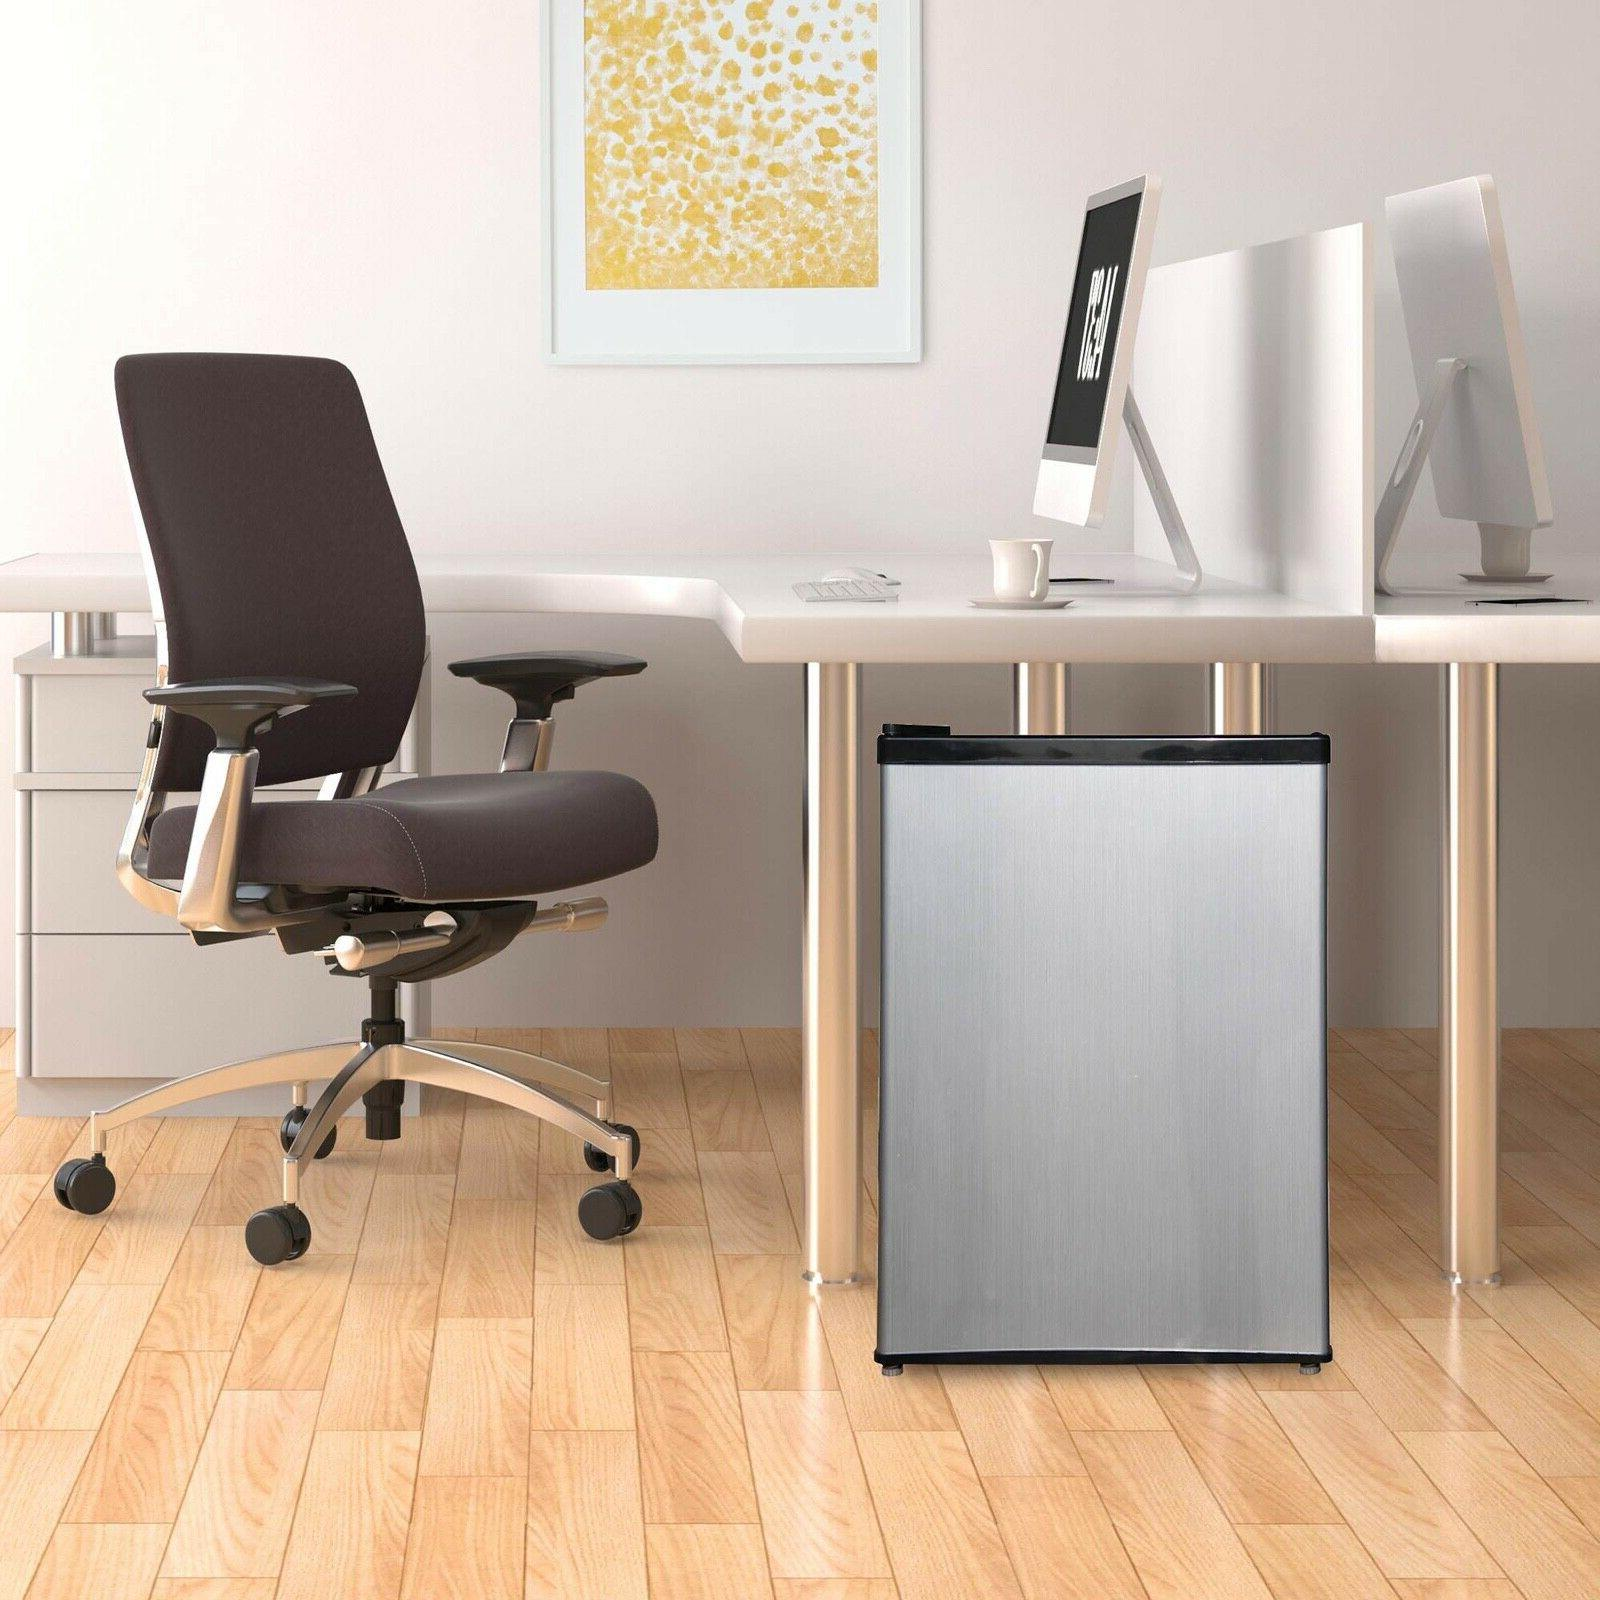 Midea Cubic Feet, Stainless